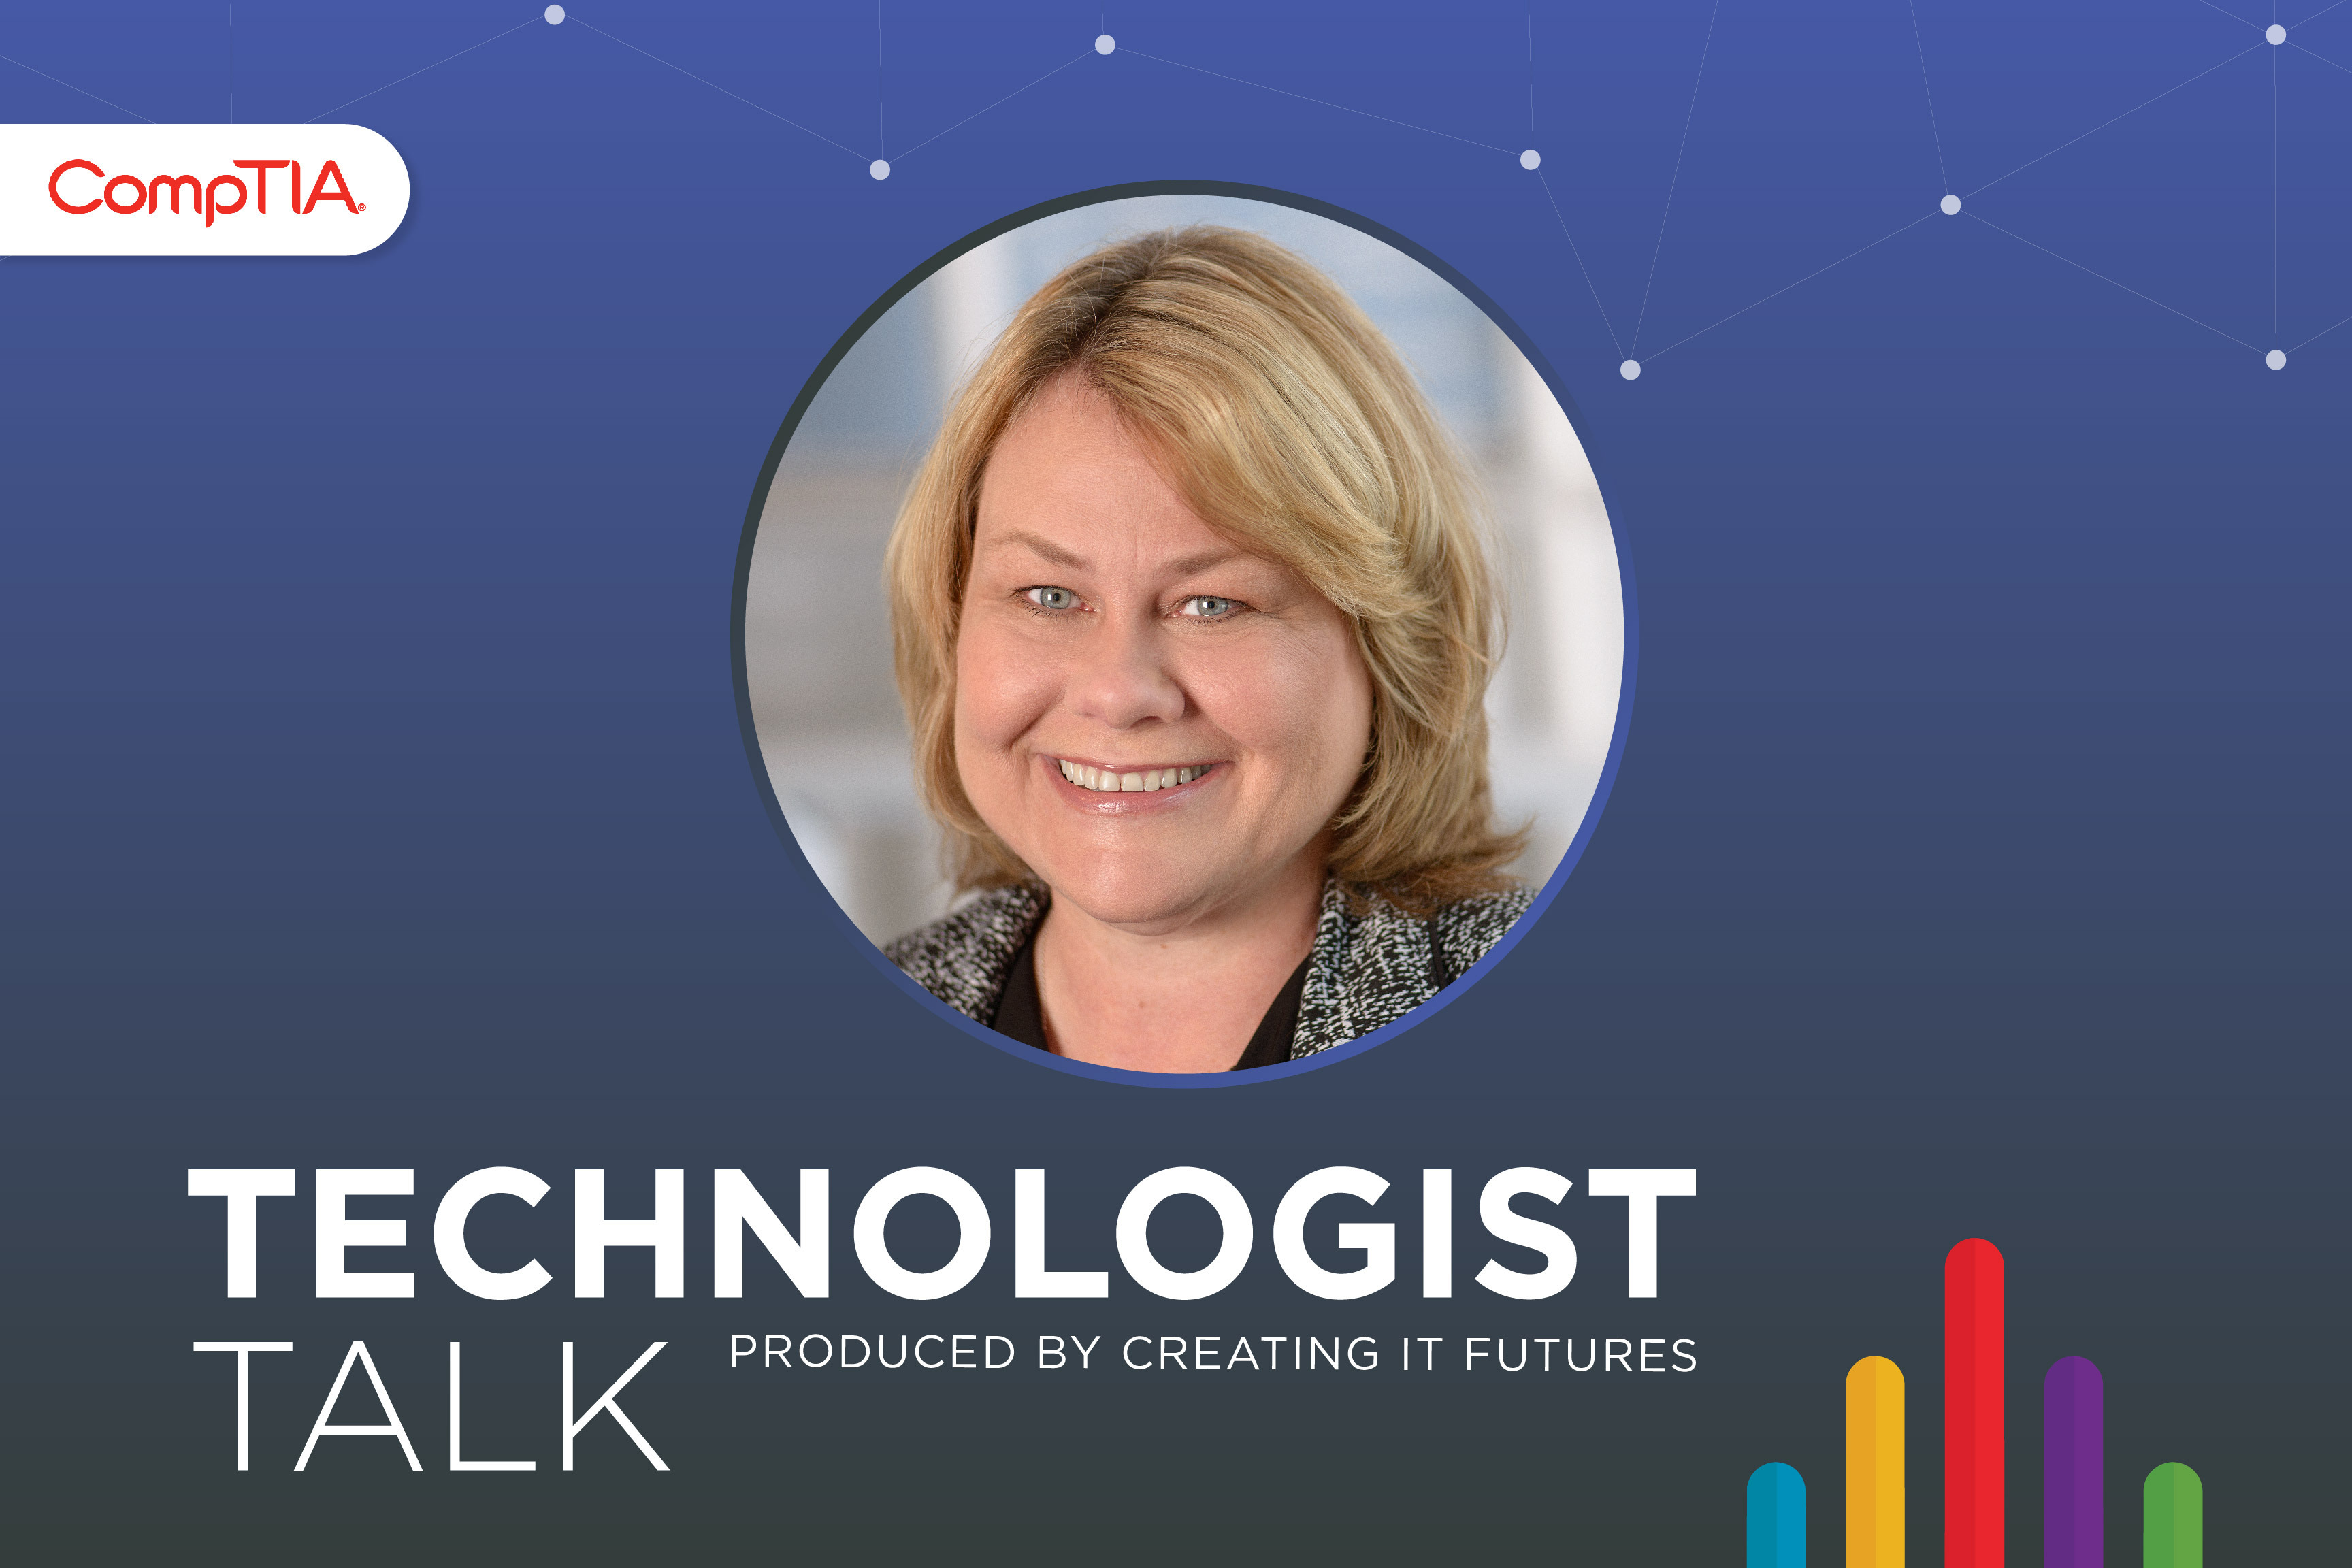 Nancy Hammervik on Technologist Talk